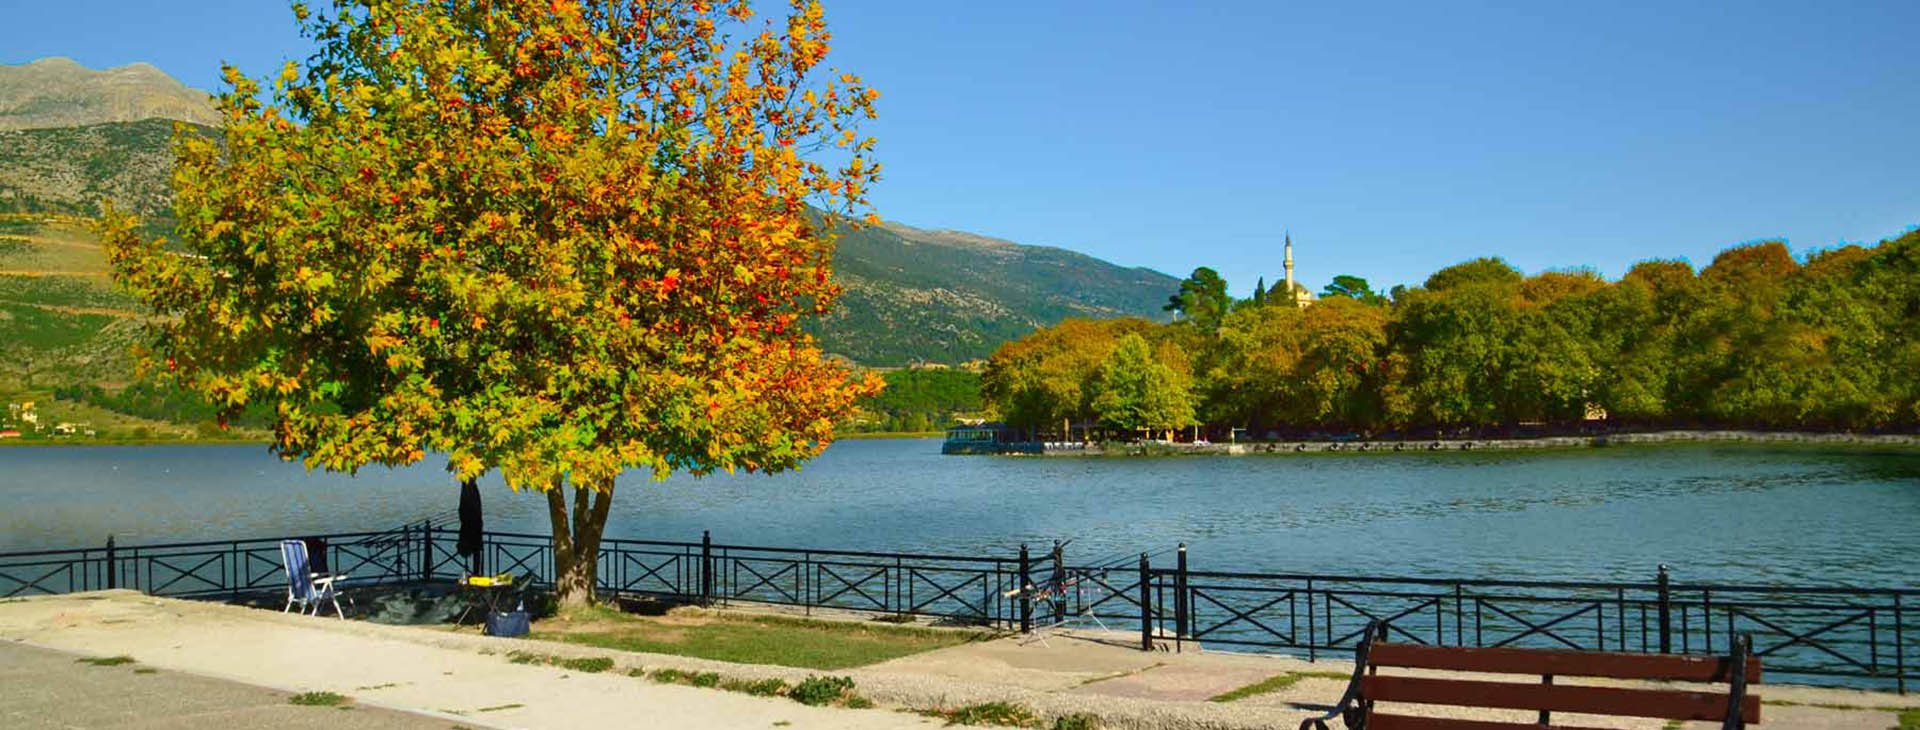 Pamvòtis lake, Ioannina city